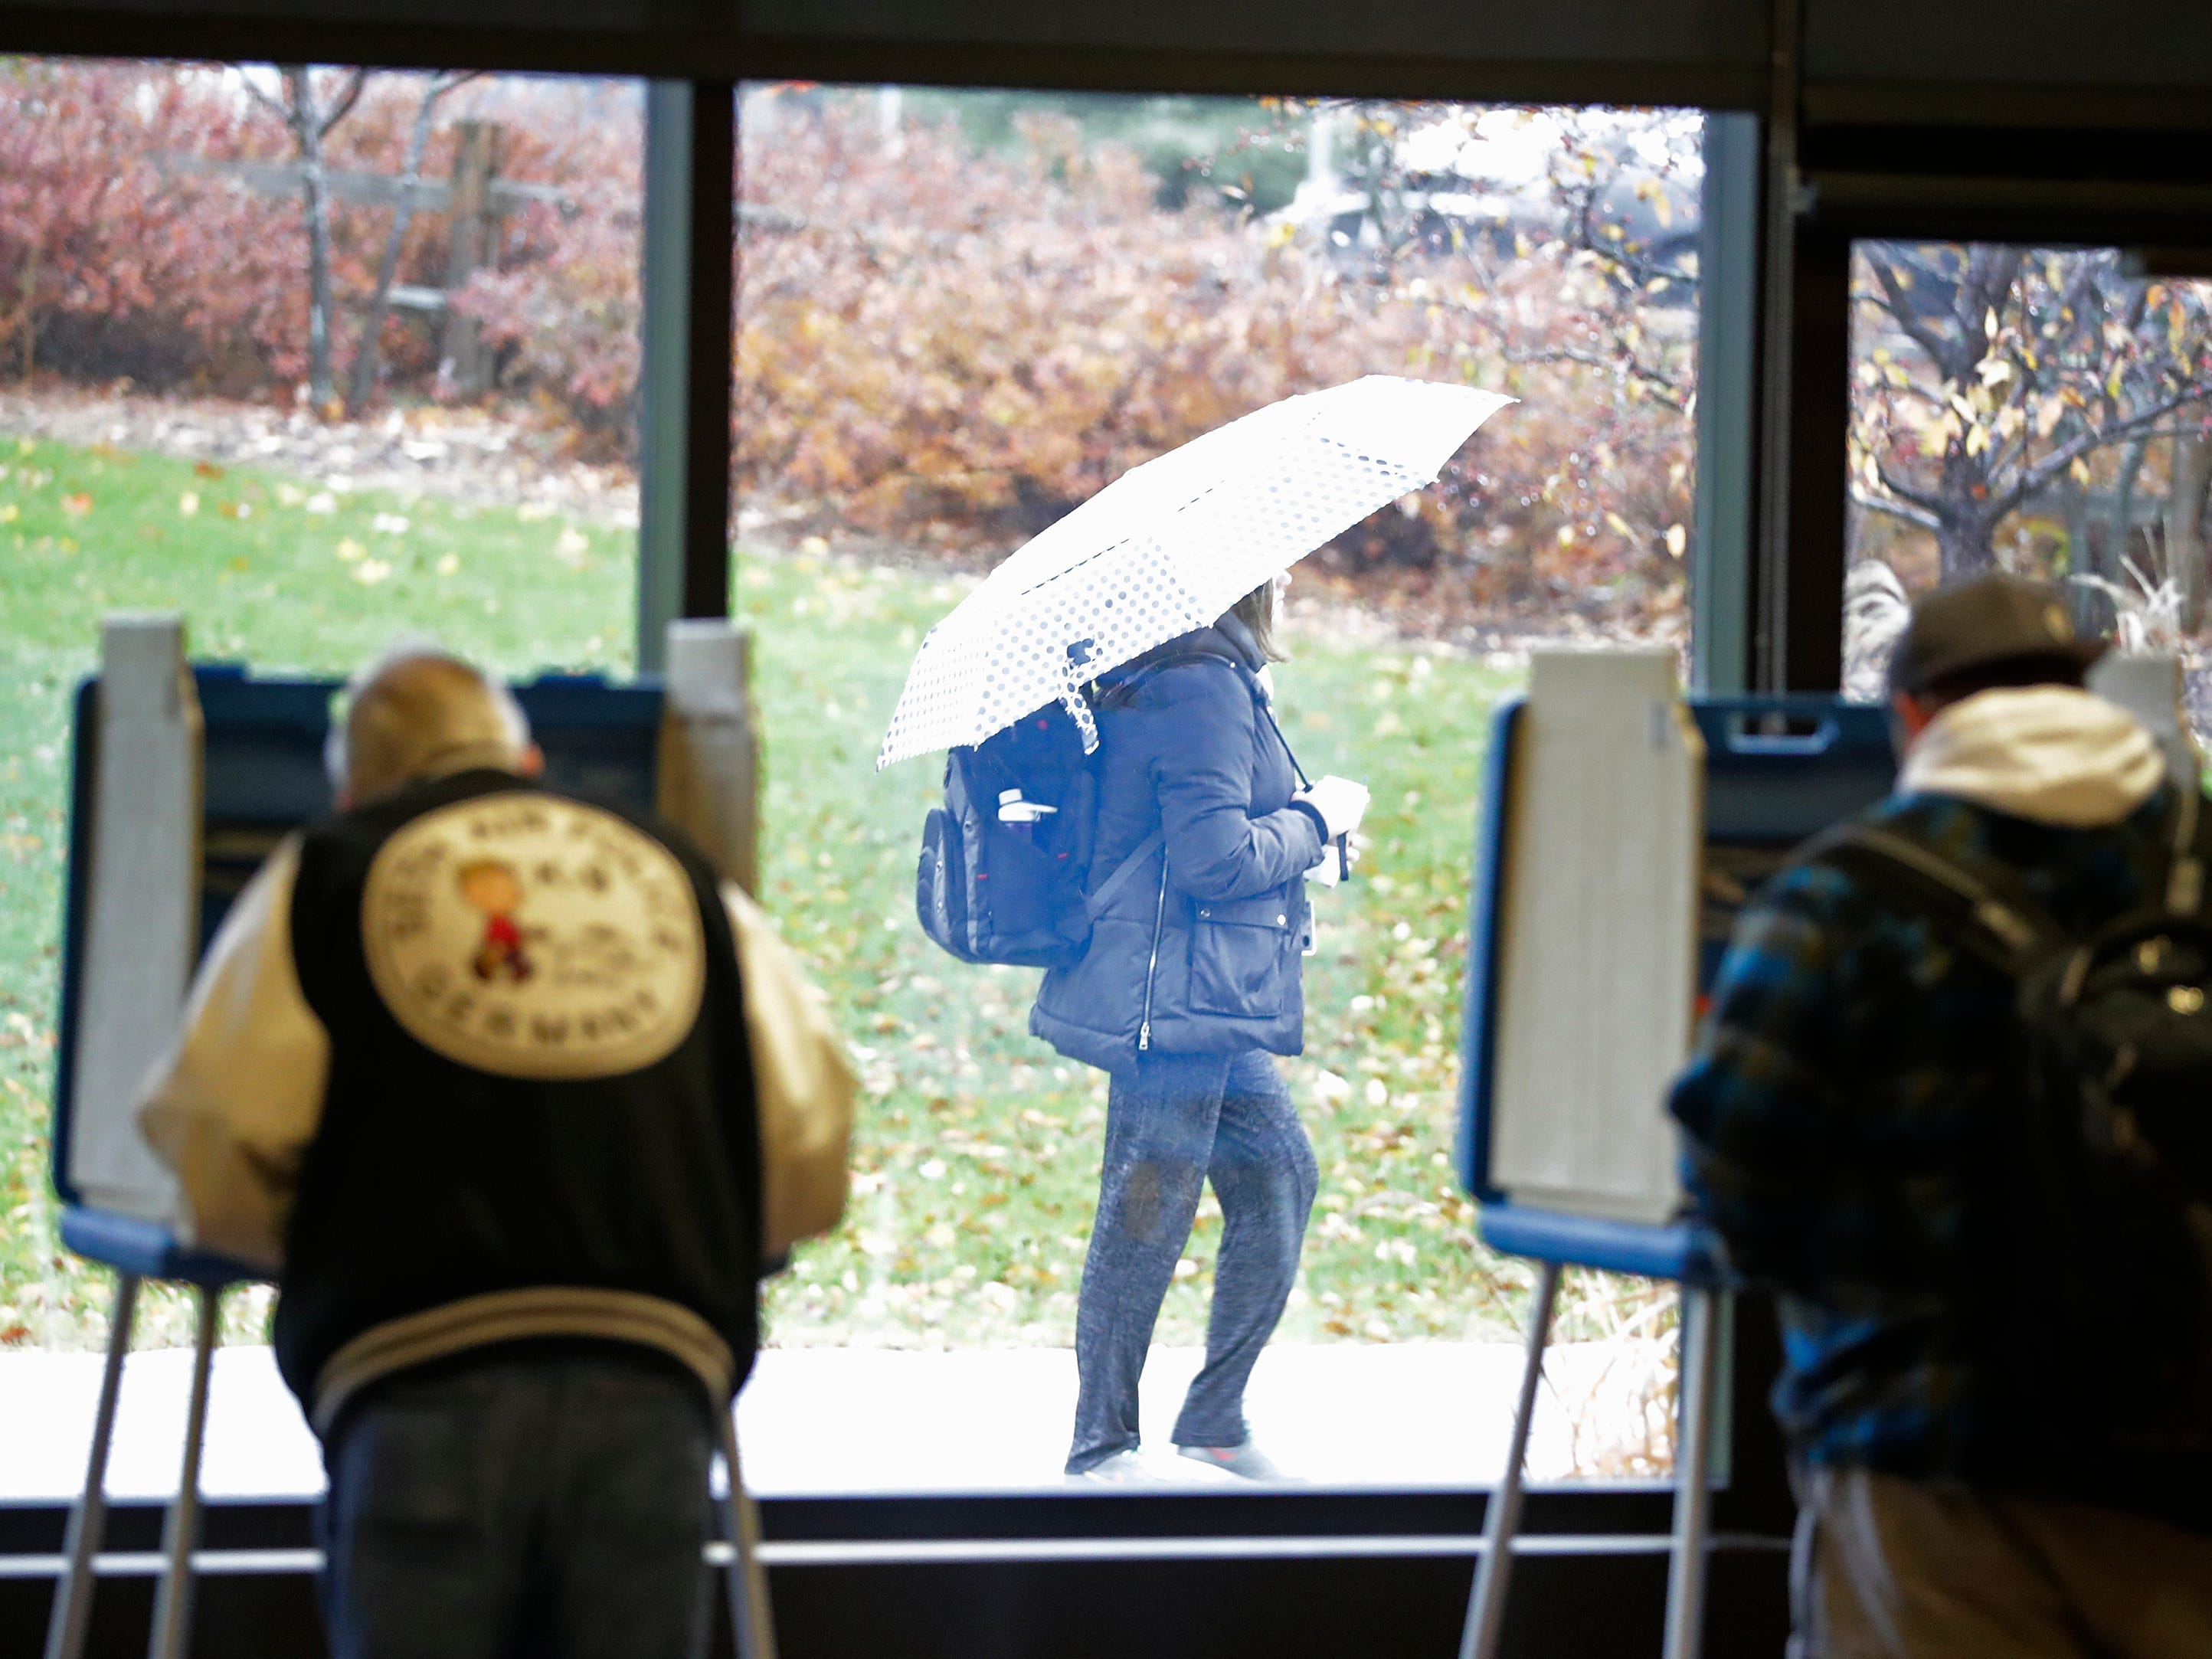 A student walks past as voters cast their ballots at the UW-Green Bay campus on Tuesday, November 6, 2018, in Green Bay, Wis.